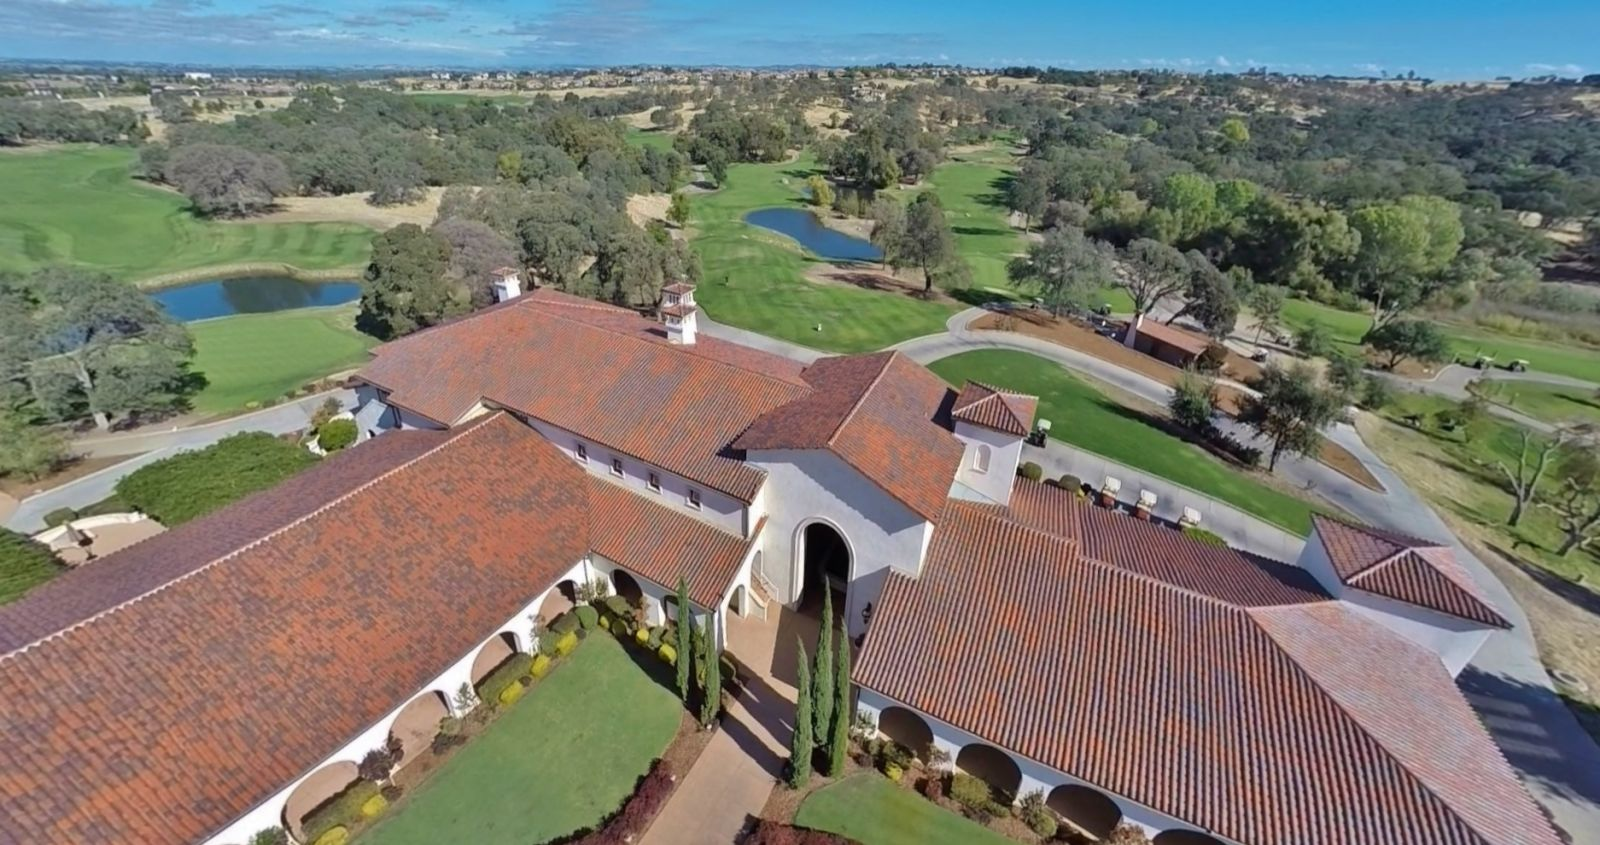 Aerial view of the clubhouse at Catta Verdera Country Club